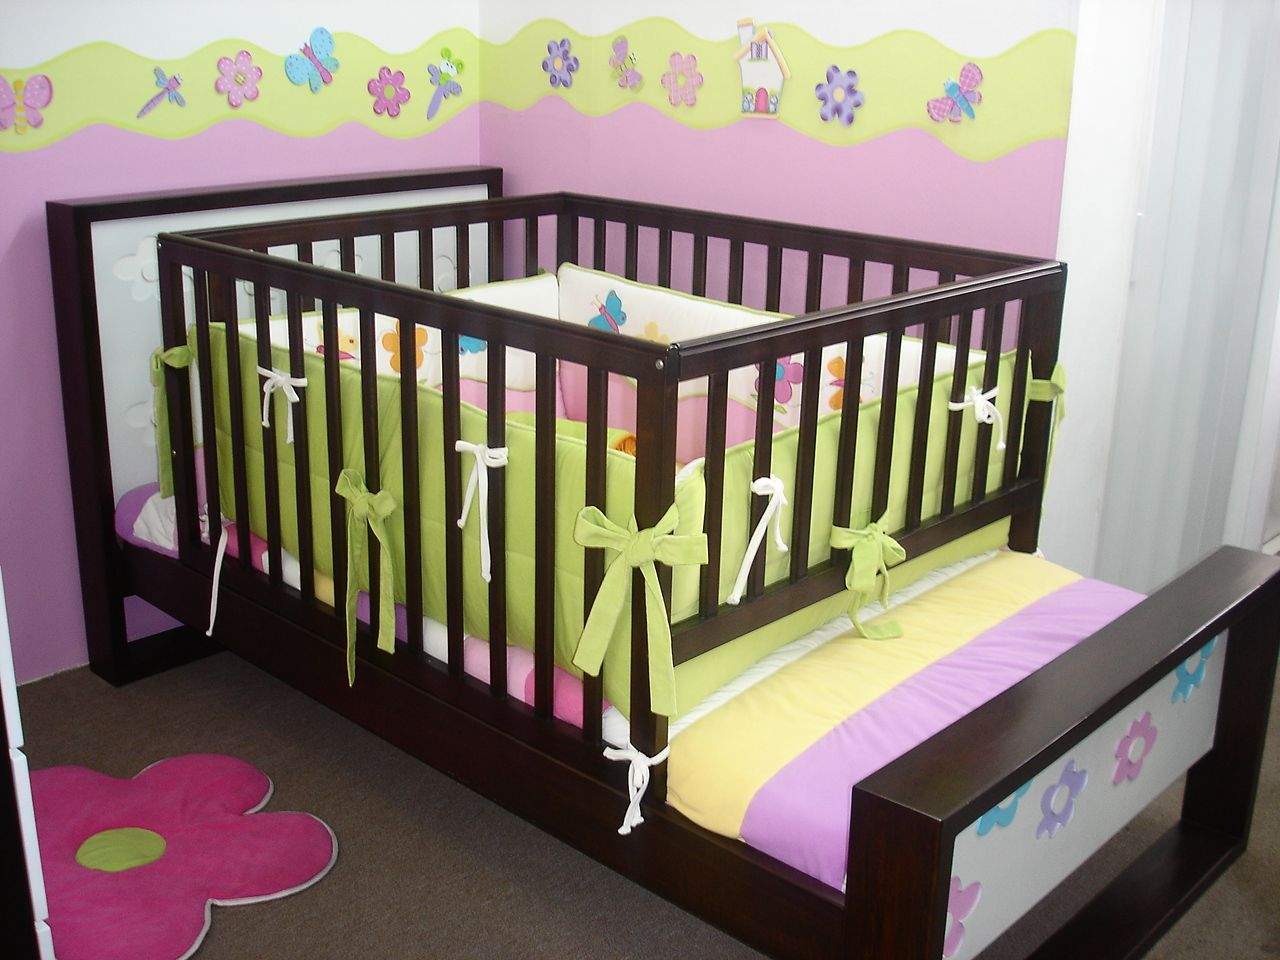 Corral Para Cama Protector Cuna Pinterest Toddler Room Decor